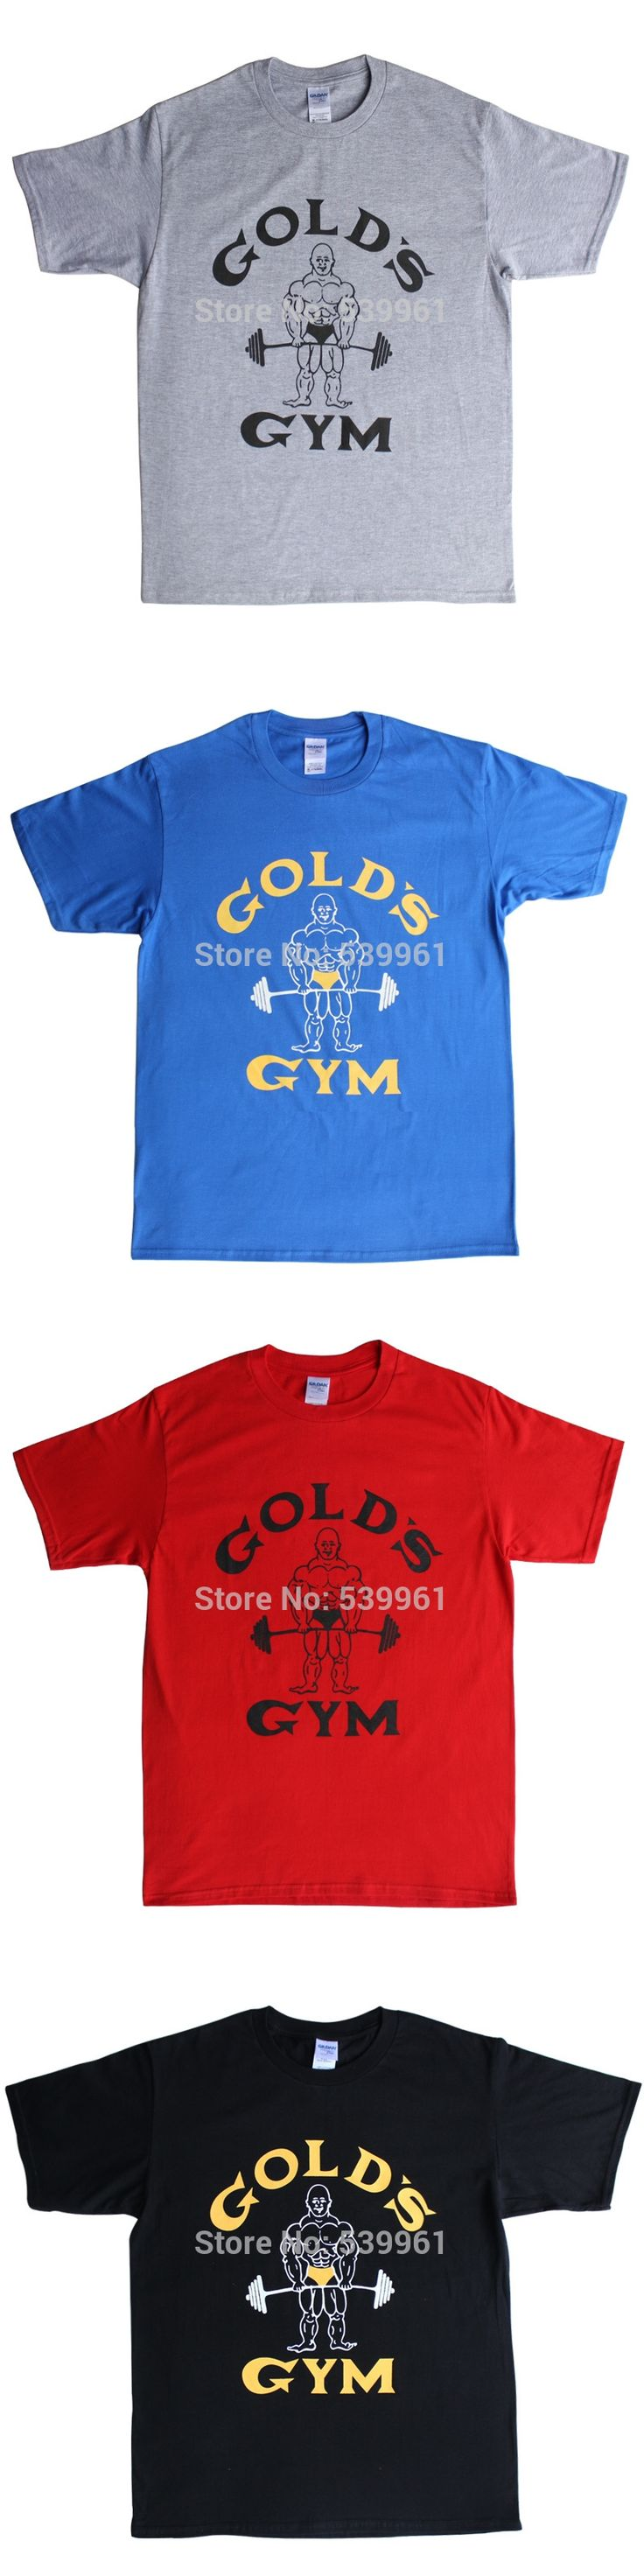 Softstyle Men's Bodybuilding T Shirt Fitness Workouts Tops &Tee Sportswear Clothes Cotton camisetas masculinas tshirt